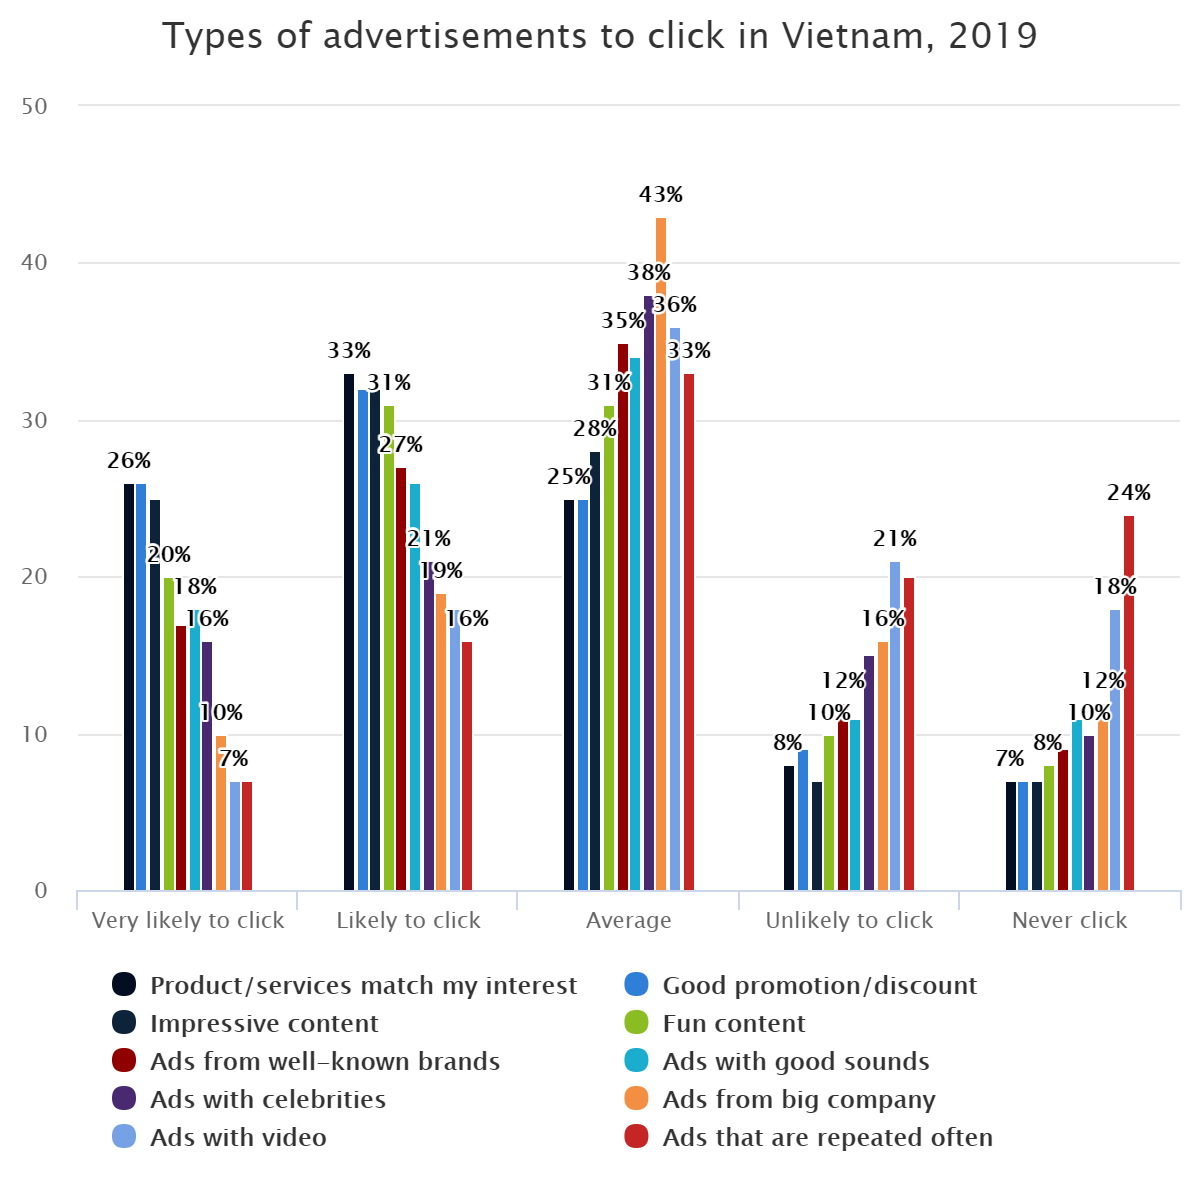 Types of advertisements to click in Vietnam, 2019